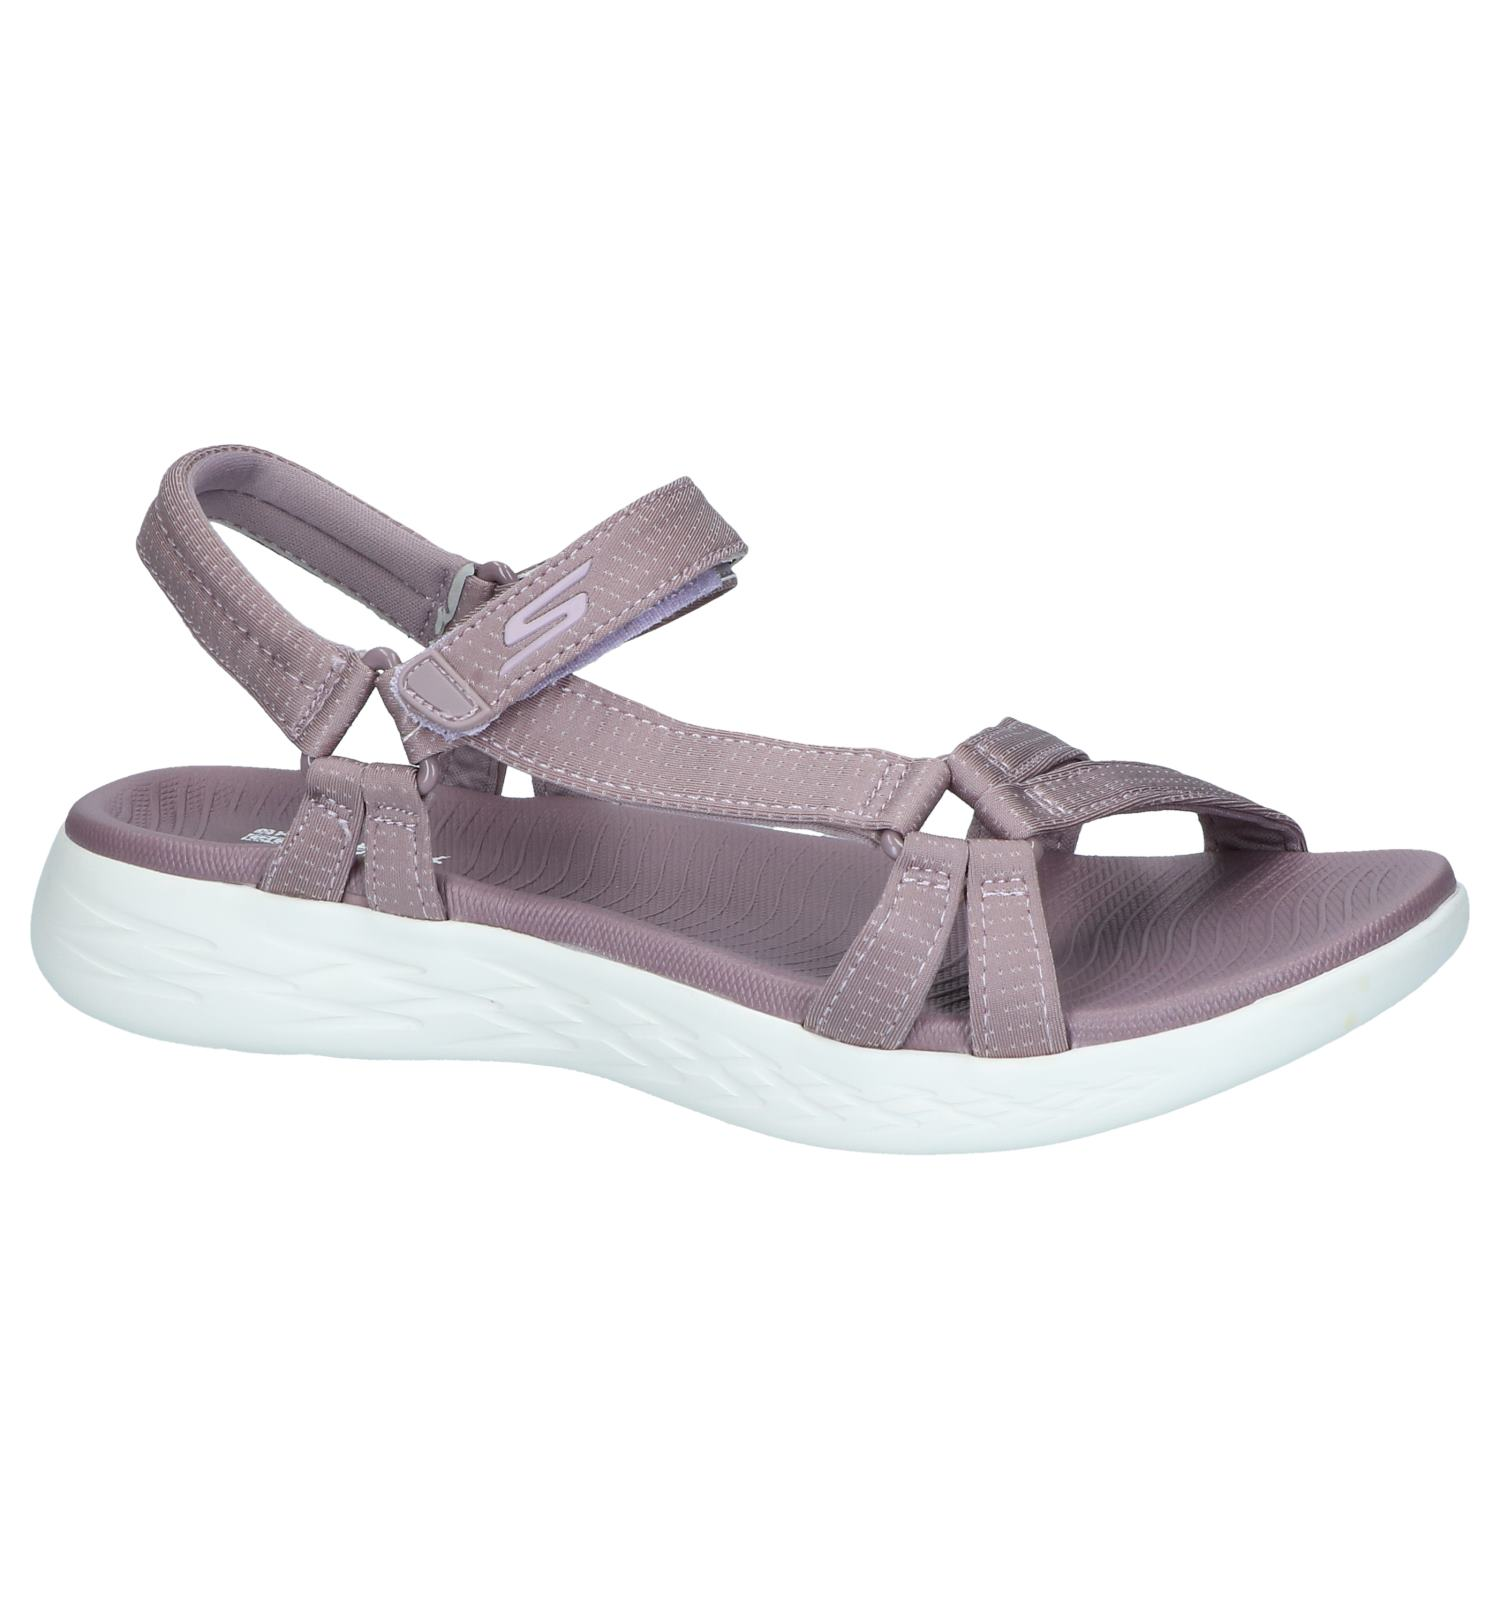 Paarse Verzend Sandalen Gratis The GoTorfs be En Retour Skechers On OX08Pnwk